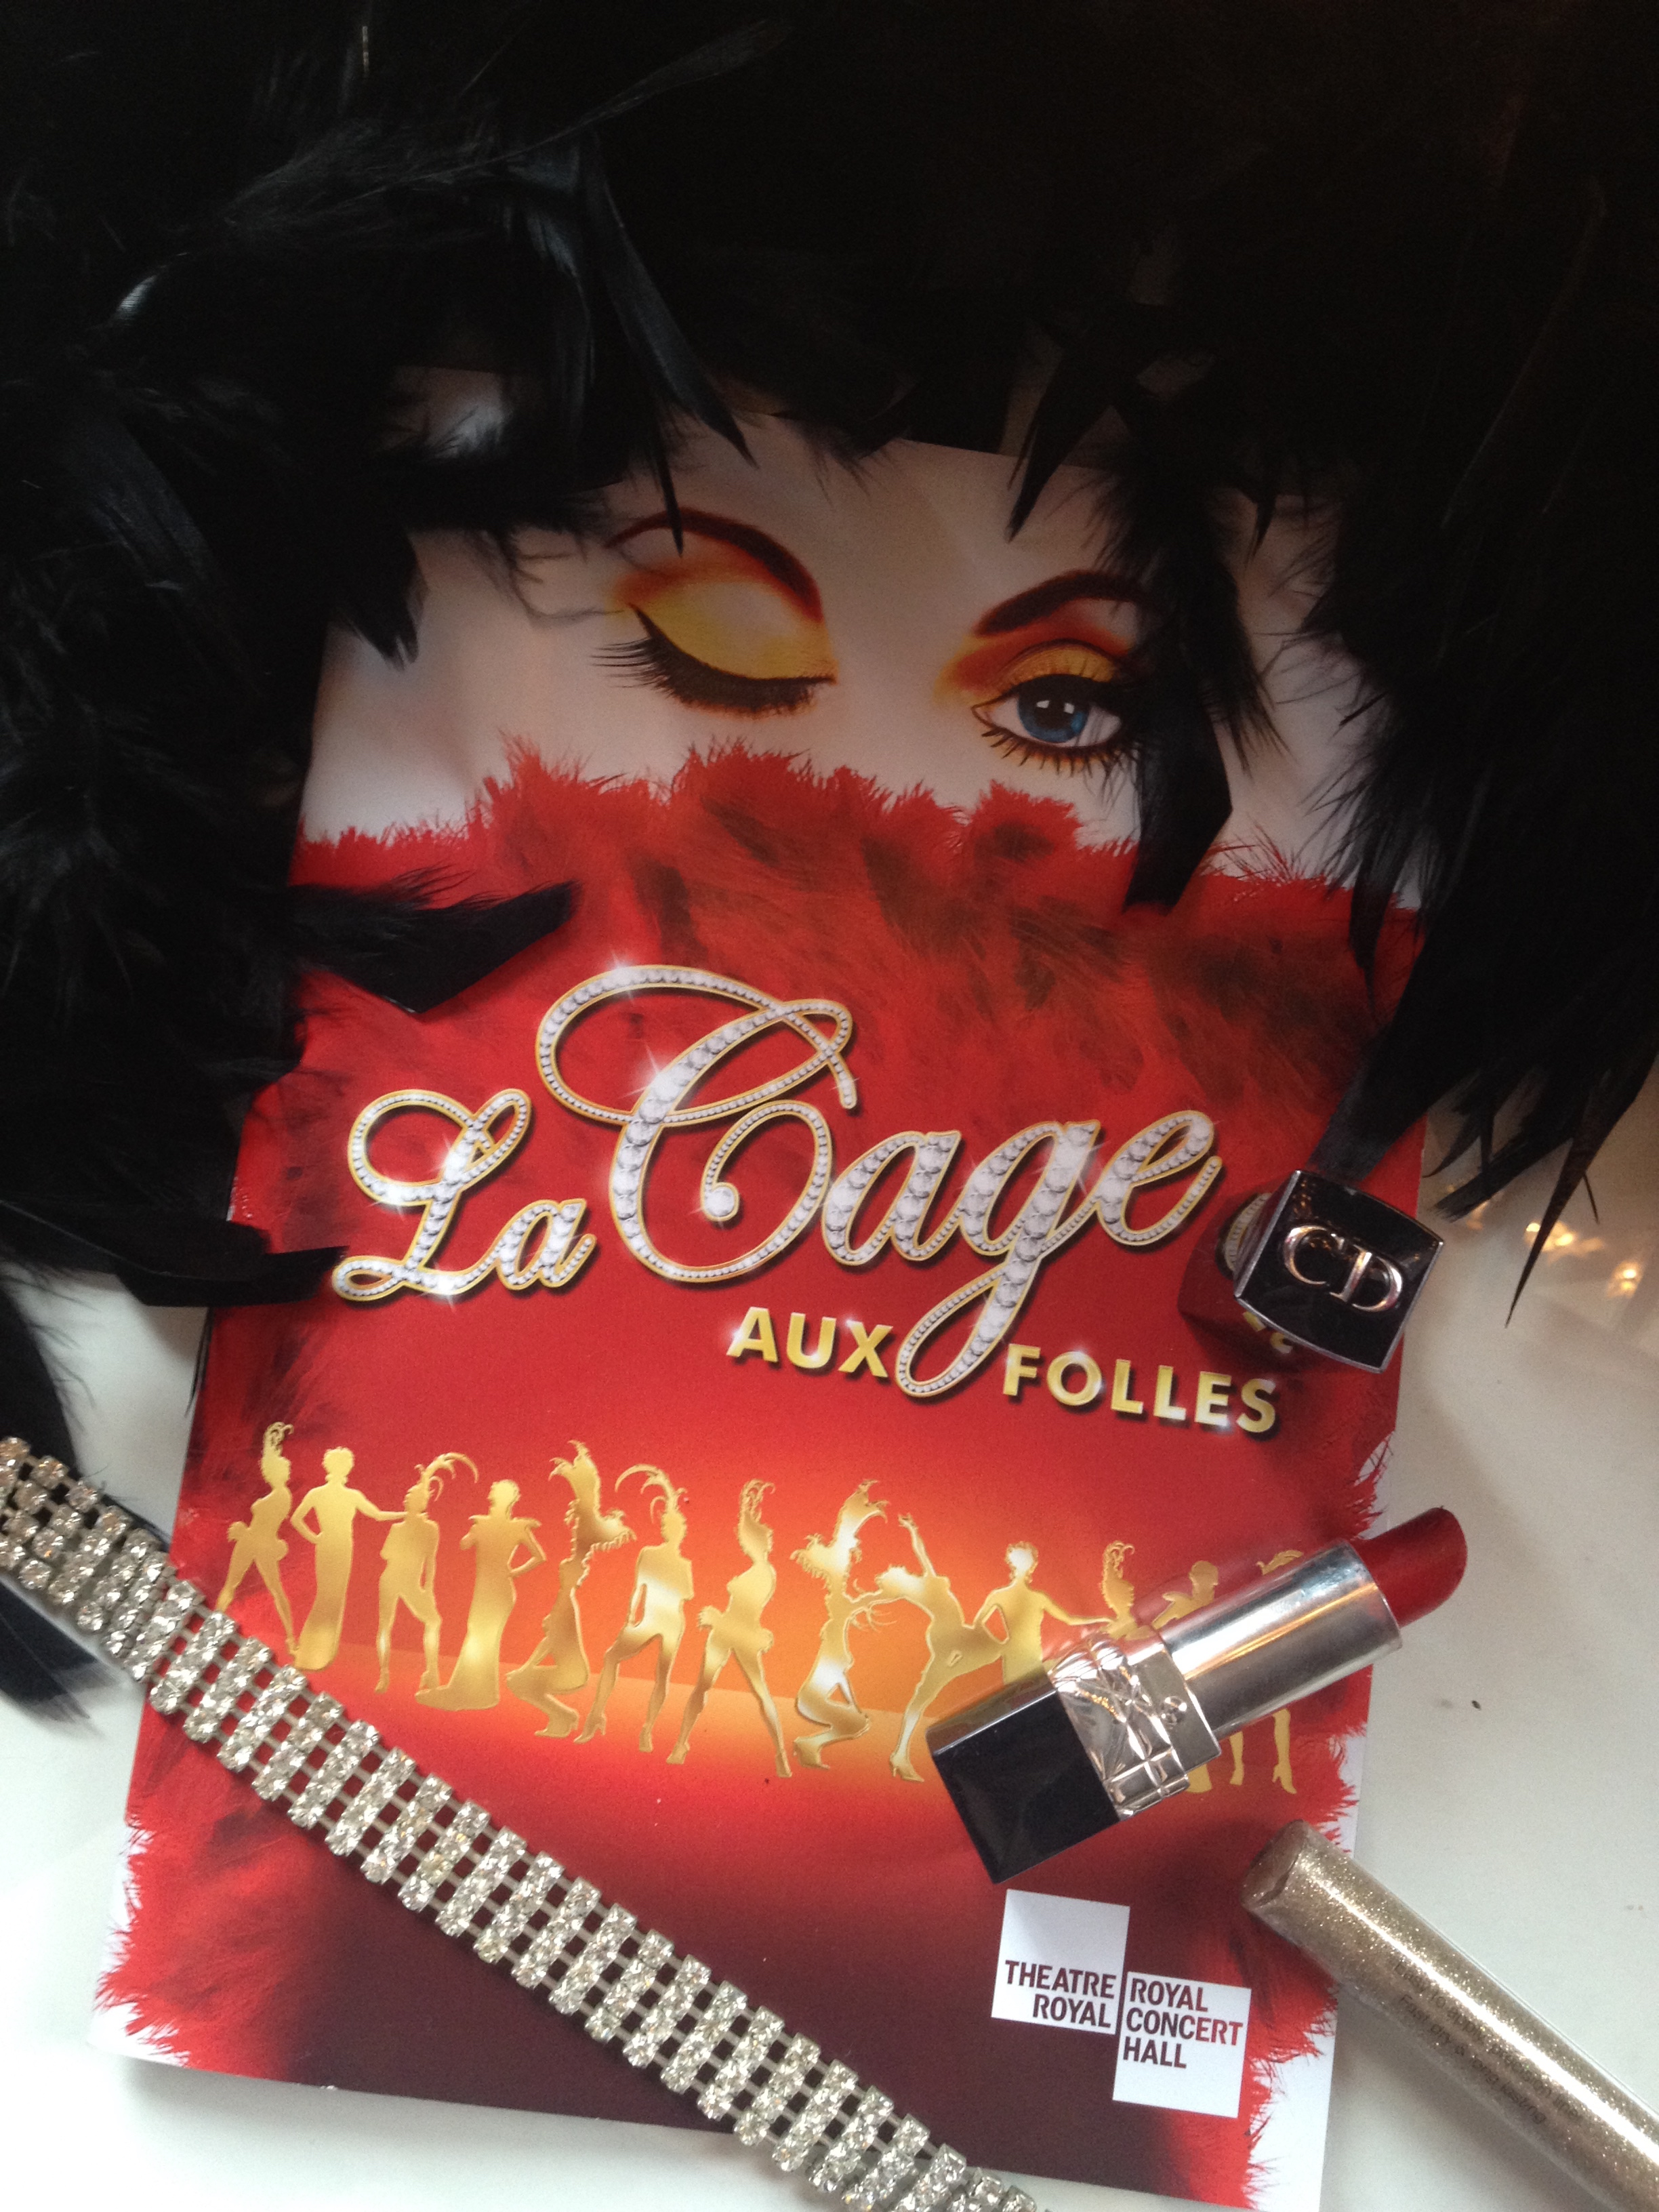 Theatre Review: La Cage Aux Folles @ Theatre Royal, Nottingham